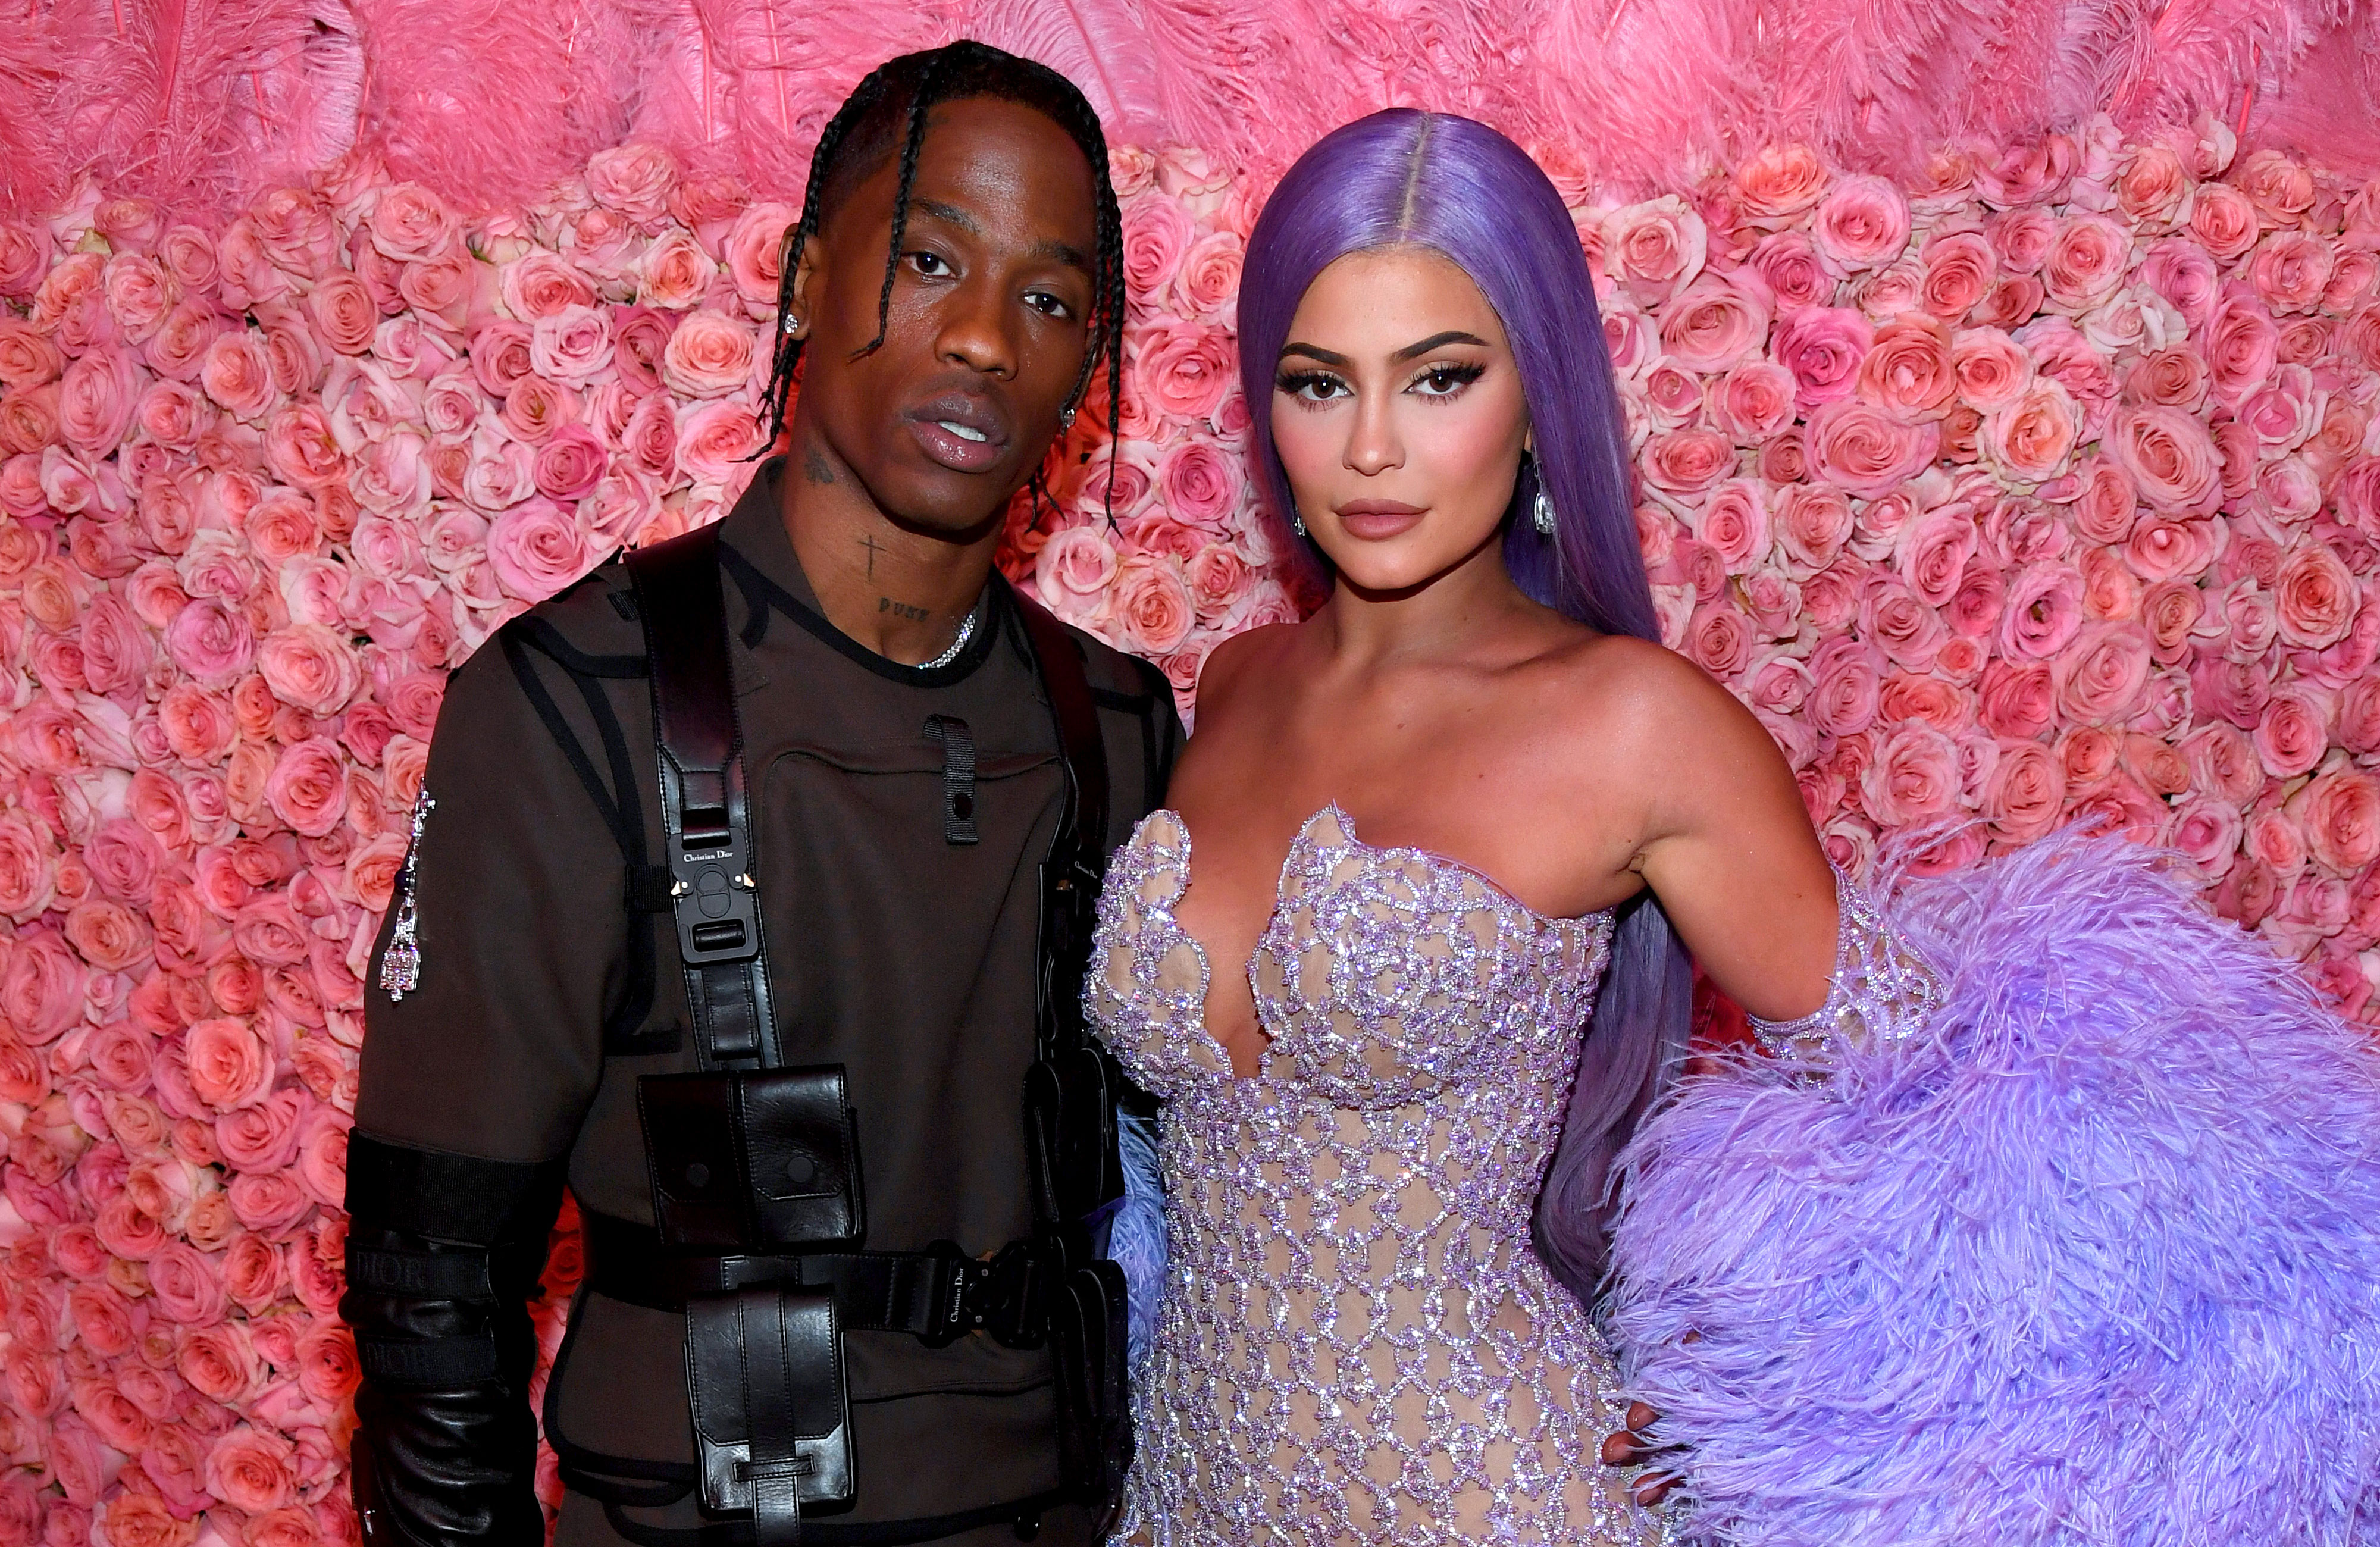 Kylie Jenner and Travis Scott Got Matching Stormi Tattoos 2019 Met Gala Celebrating Camp - Travis Scott and Kylie Jenner attends The 2019 Met Gala Celebrating Camp: Notes on Fashion at Metropolitan Museum of Art on May 06, 2019 in New York City.